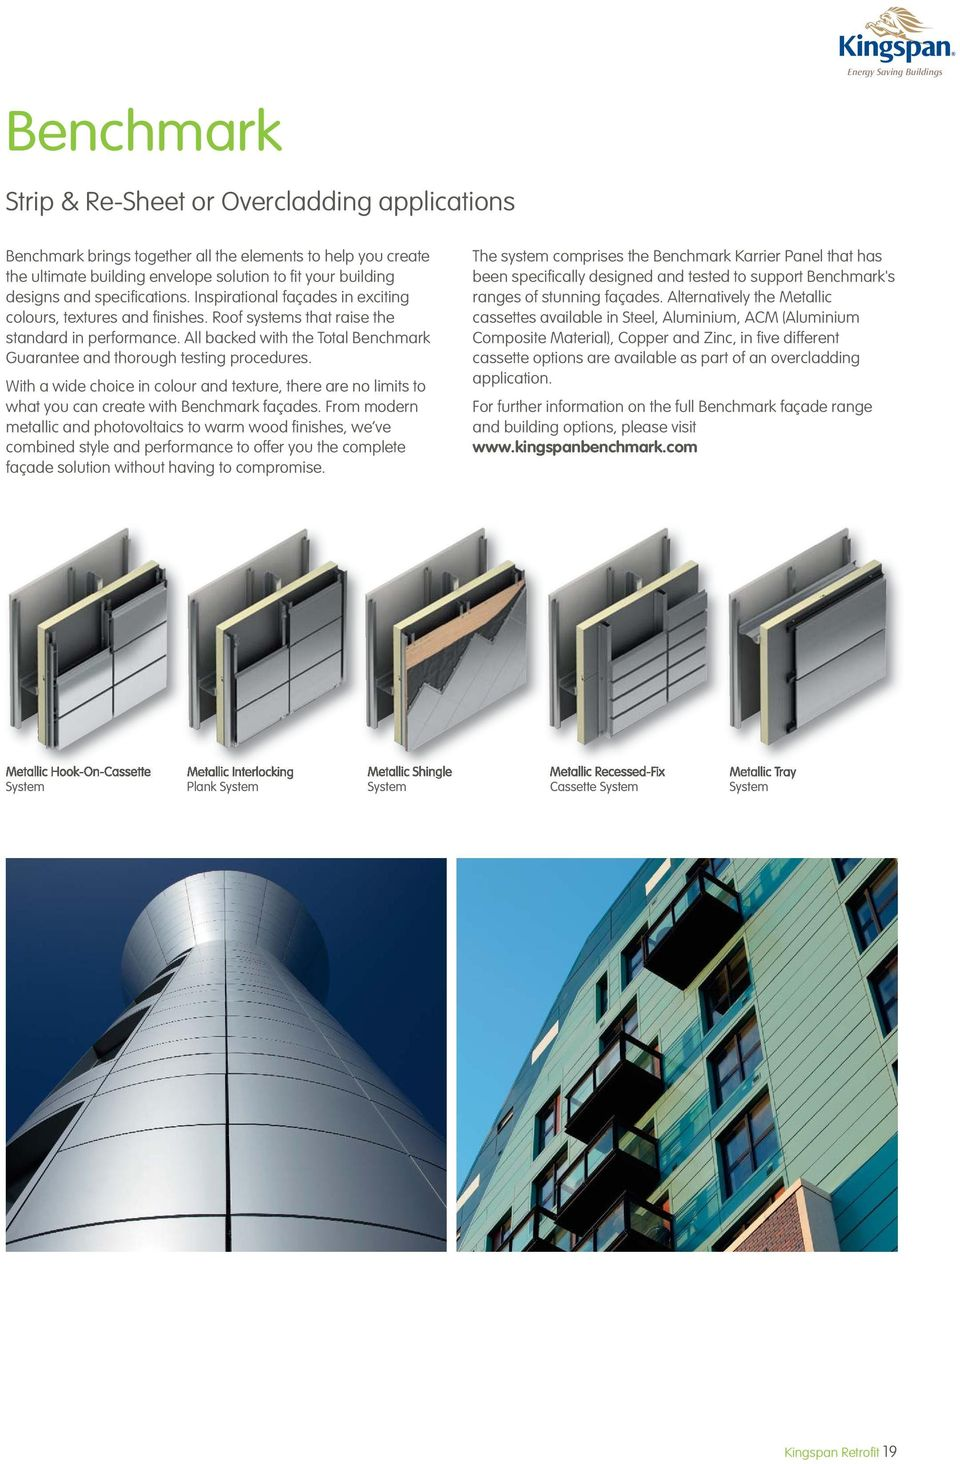 All backed with the Total Benchmark Guarantee and thorough testing procedures. With a wide choice in colour and texture, there are no limits to what you can create with Benchmark façades.